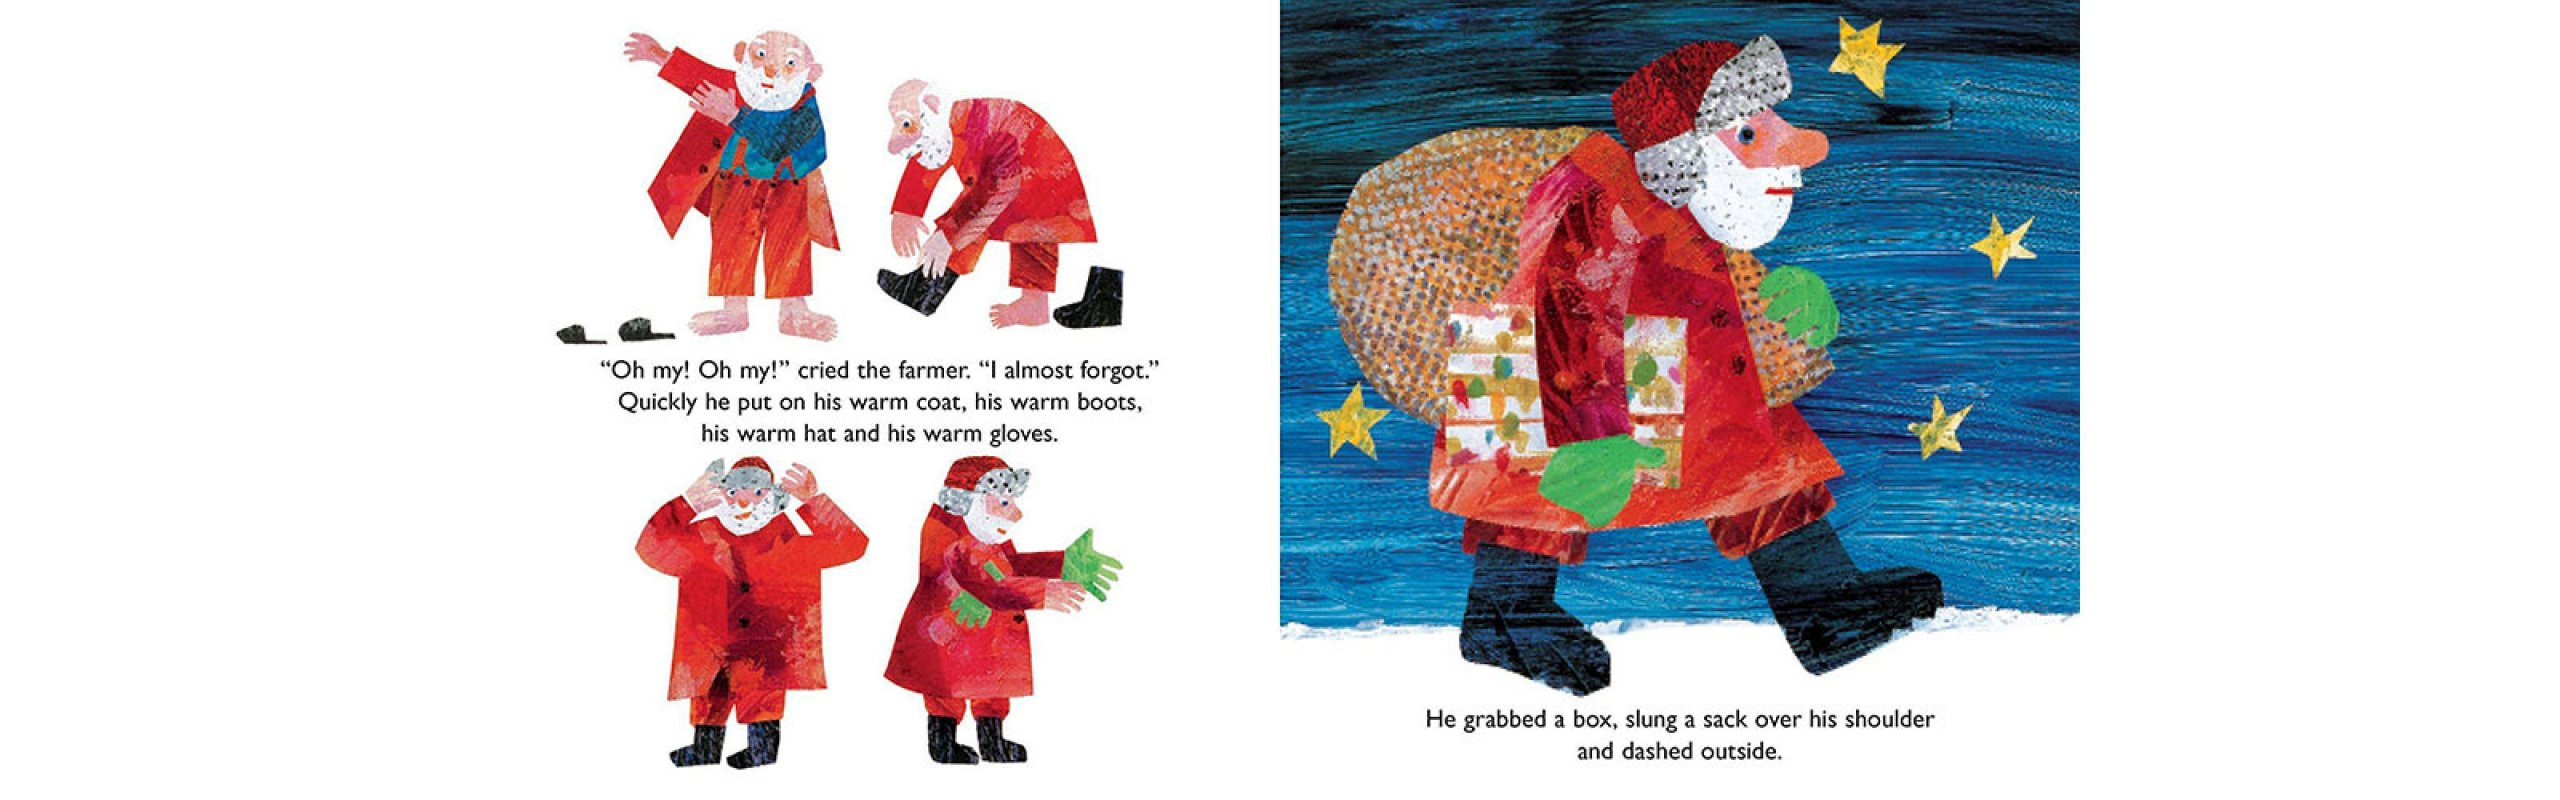 It's Storytime! Dream Snow by Eric Carle